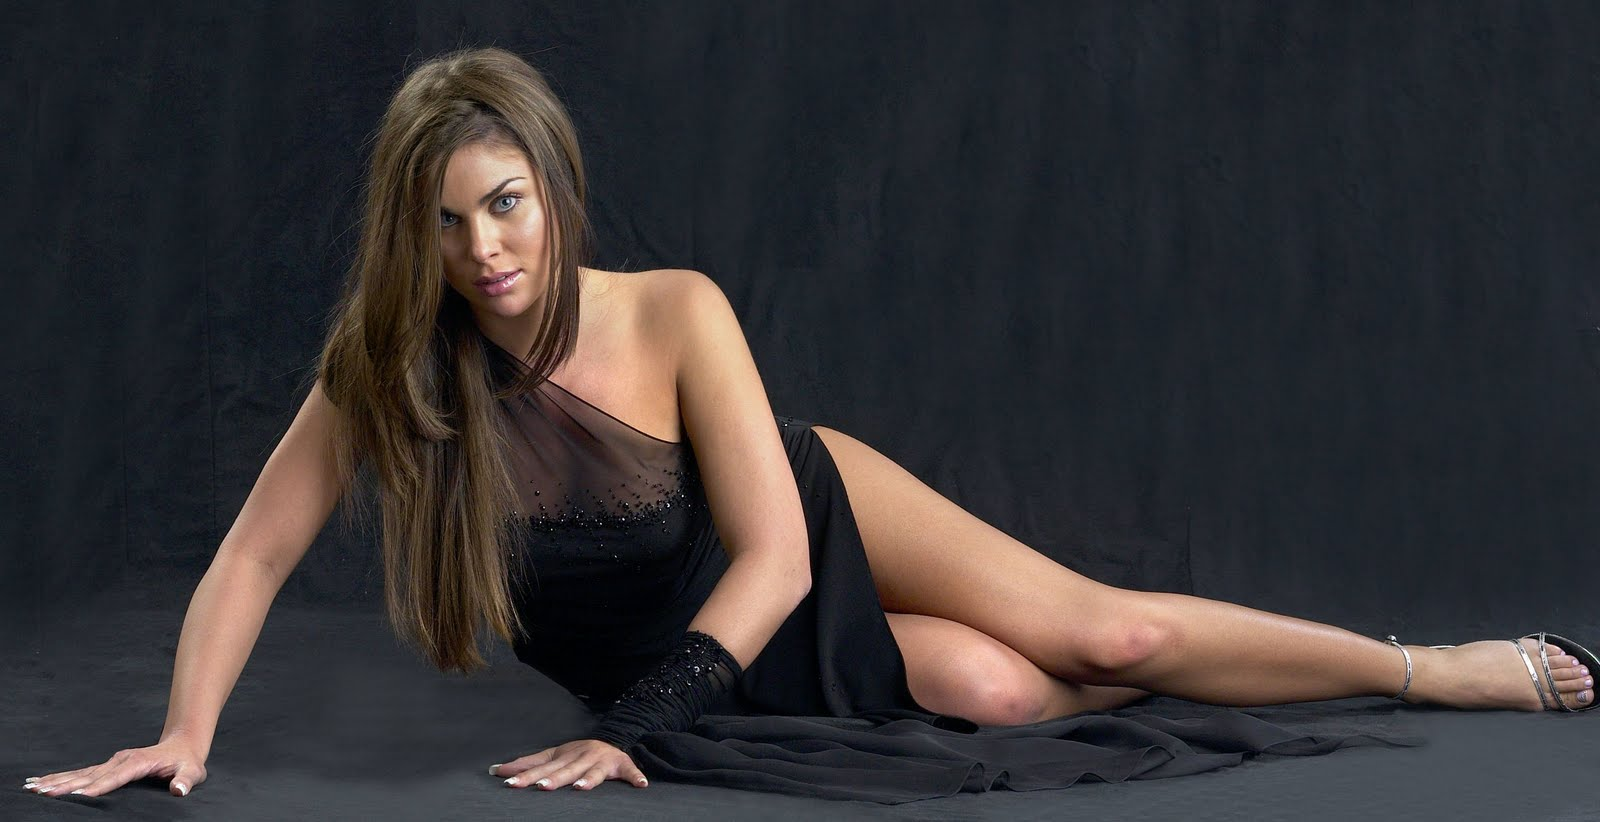 Something is. Nadia bjorlin sex